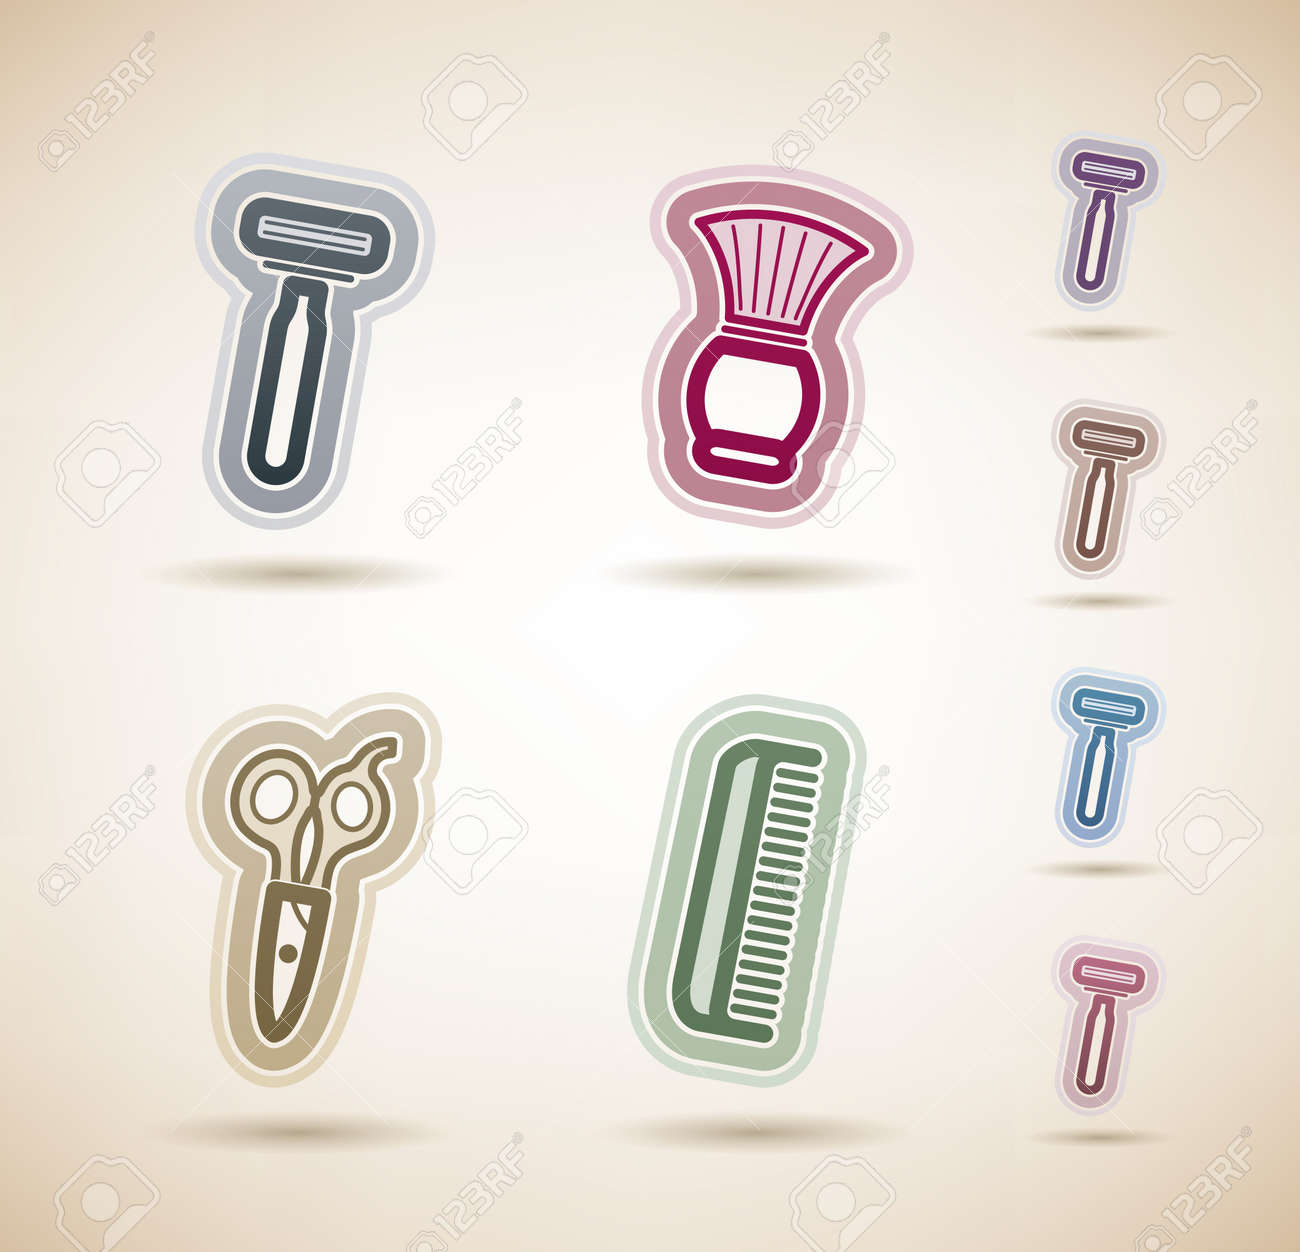 Bathroom Utensils Royalty Free Cliparts Vectors And Stock